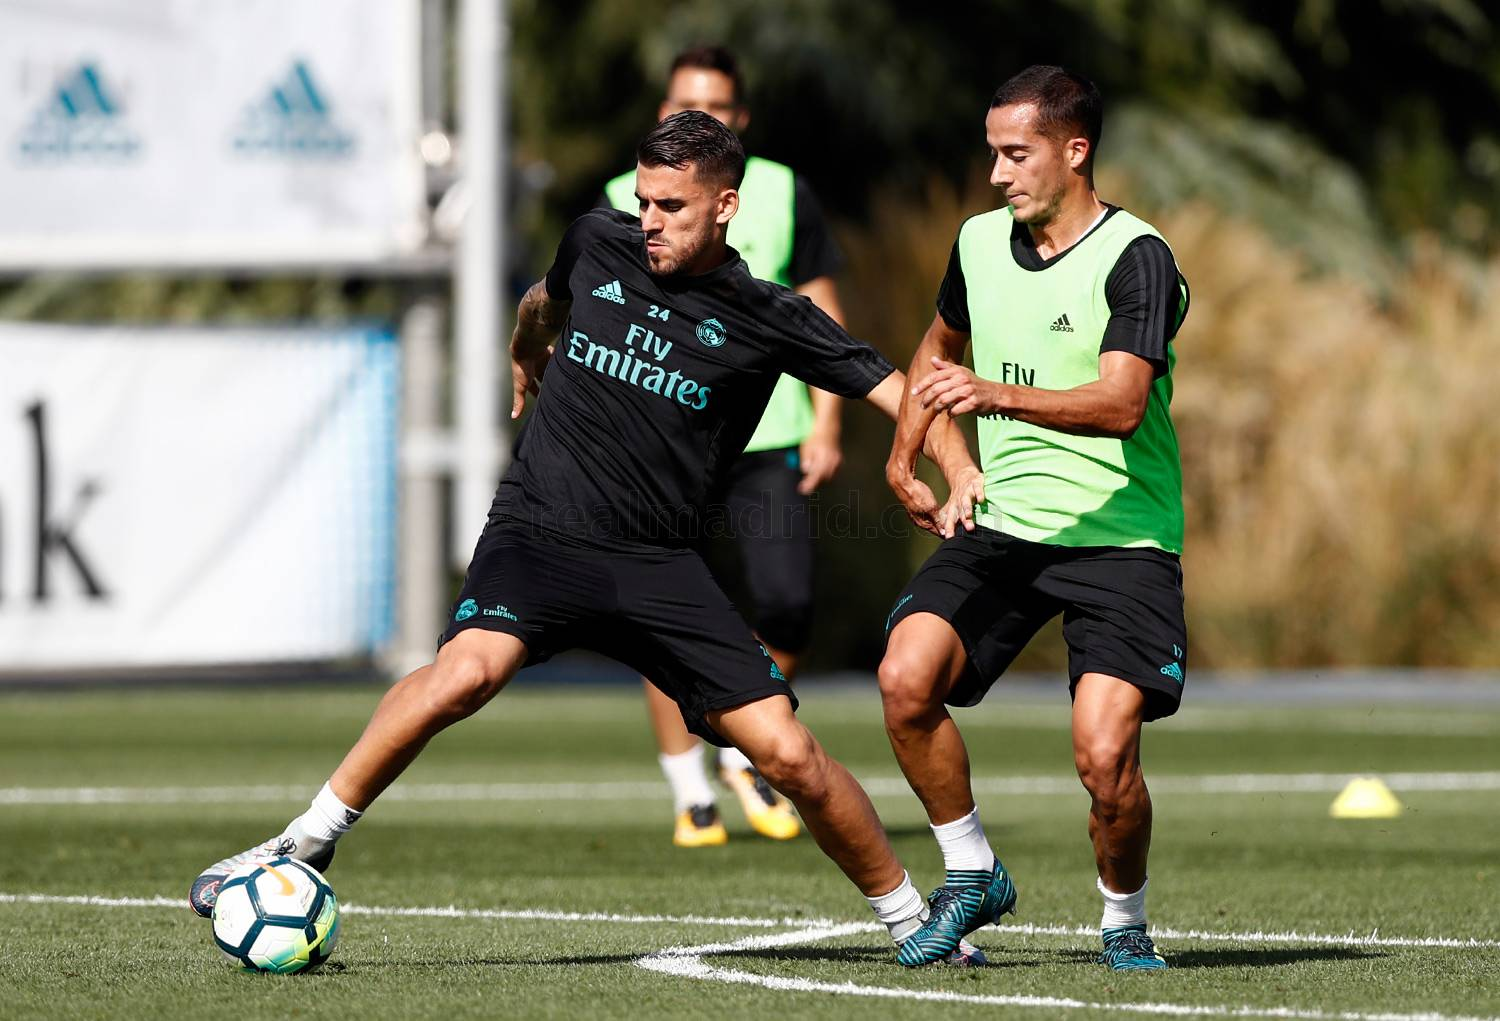 Real Madrid - Entrenamiento del Real Madrid - 28-09-2017